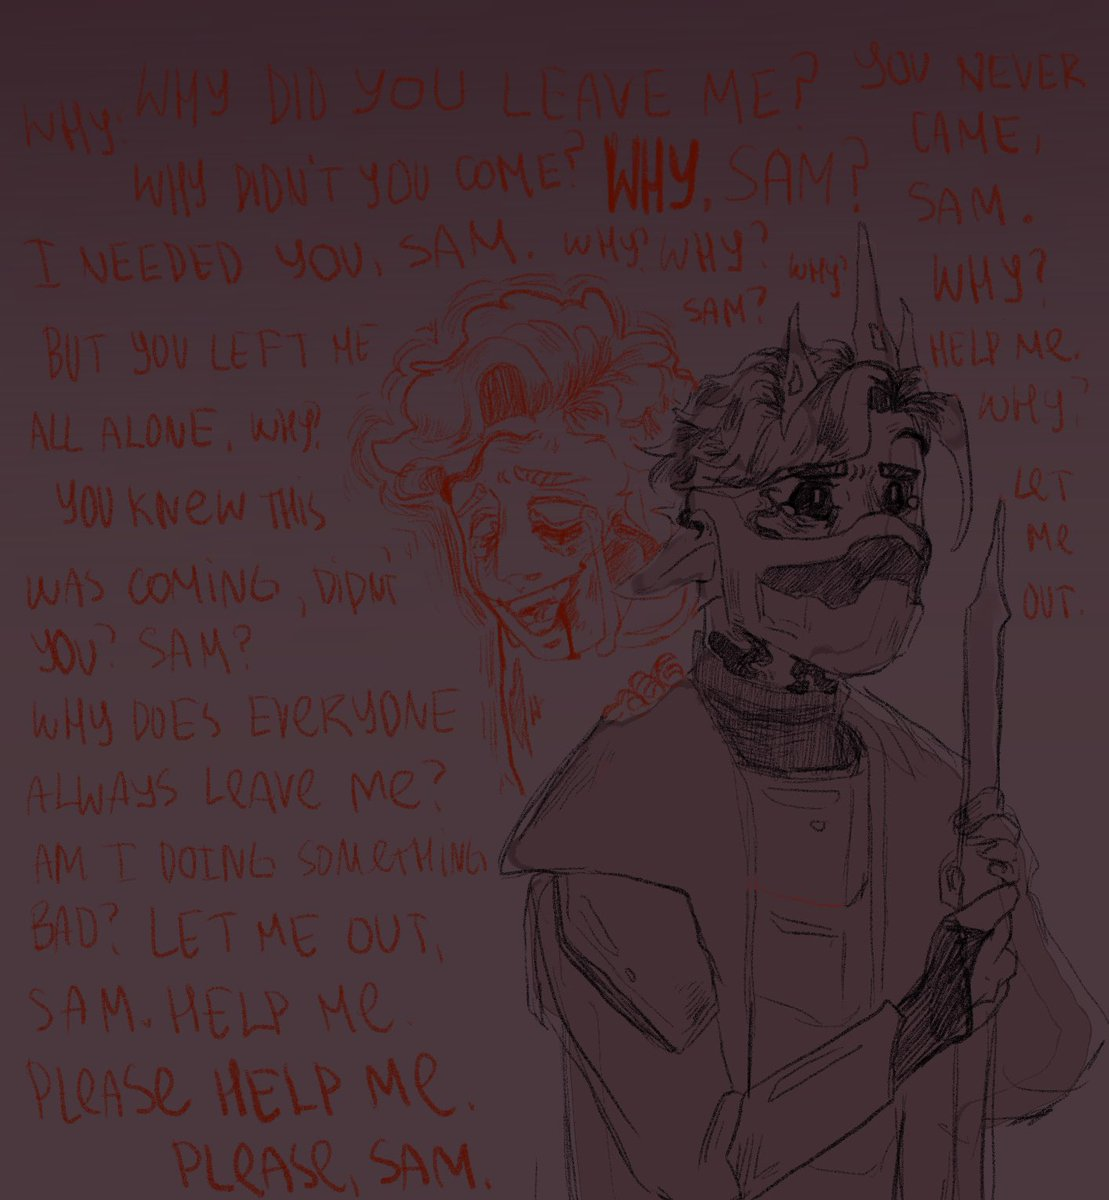 damn the way Sam sounded? it just BROKE me. Tbh i don't think Tommy will last dead for long but guess who will experience the ✨trauma✨ as well? yuh.  #TOMMYLORE #TOMMYINNIT #dreamsmpfanart #awesamdude #HESDEAD